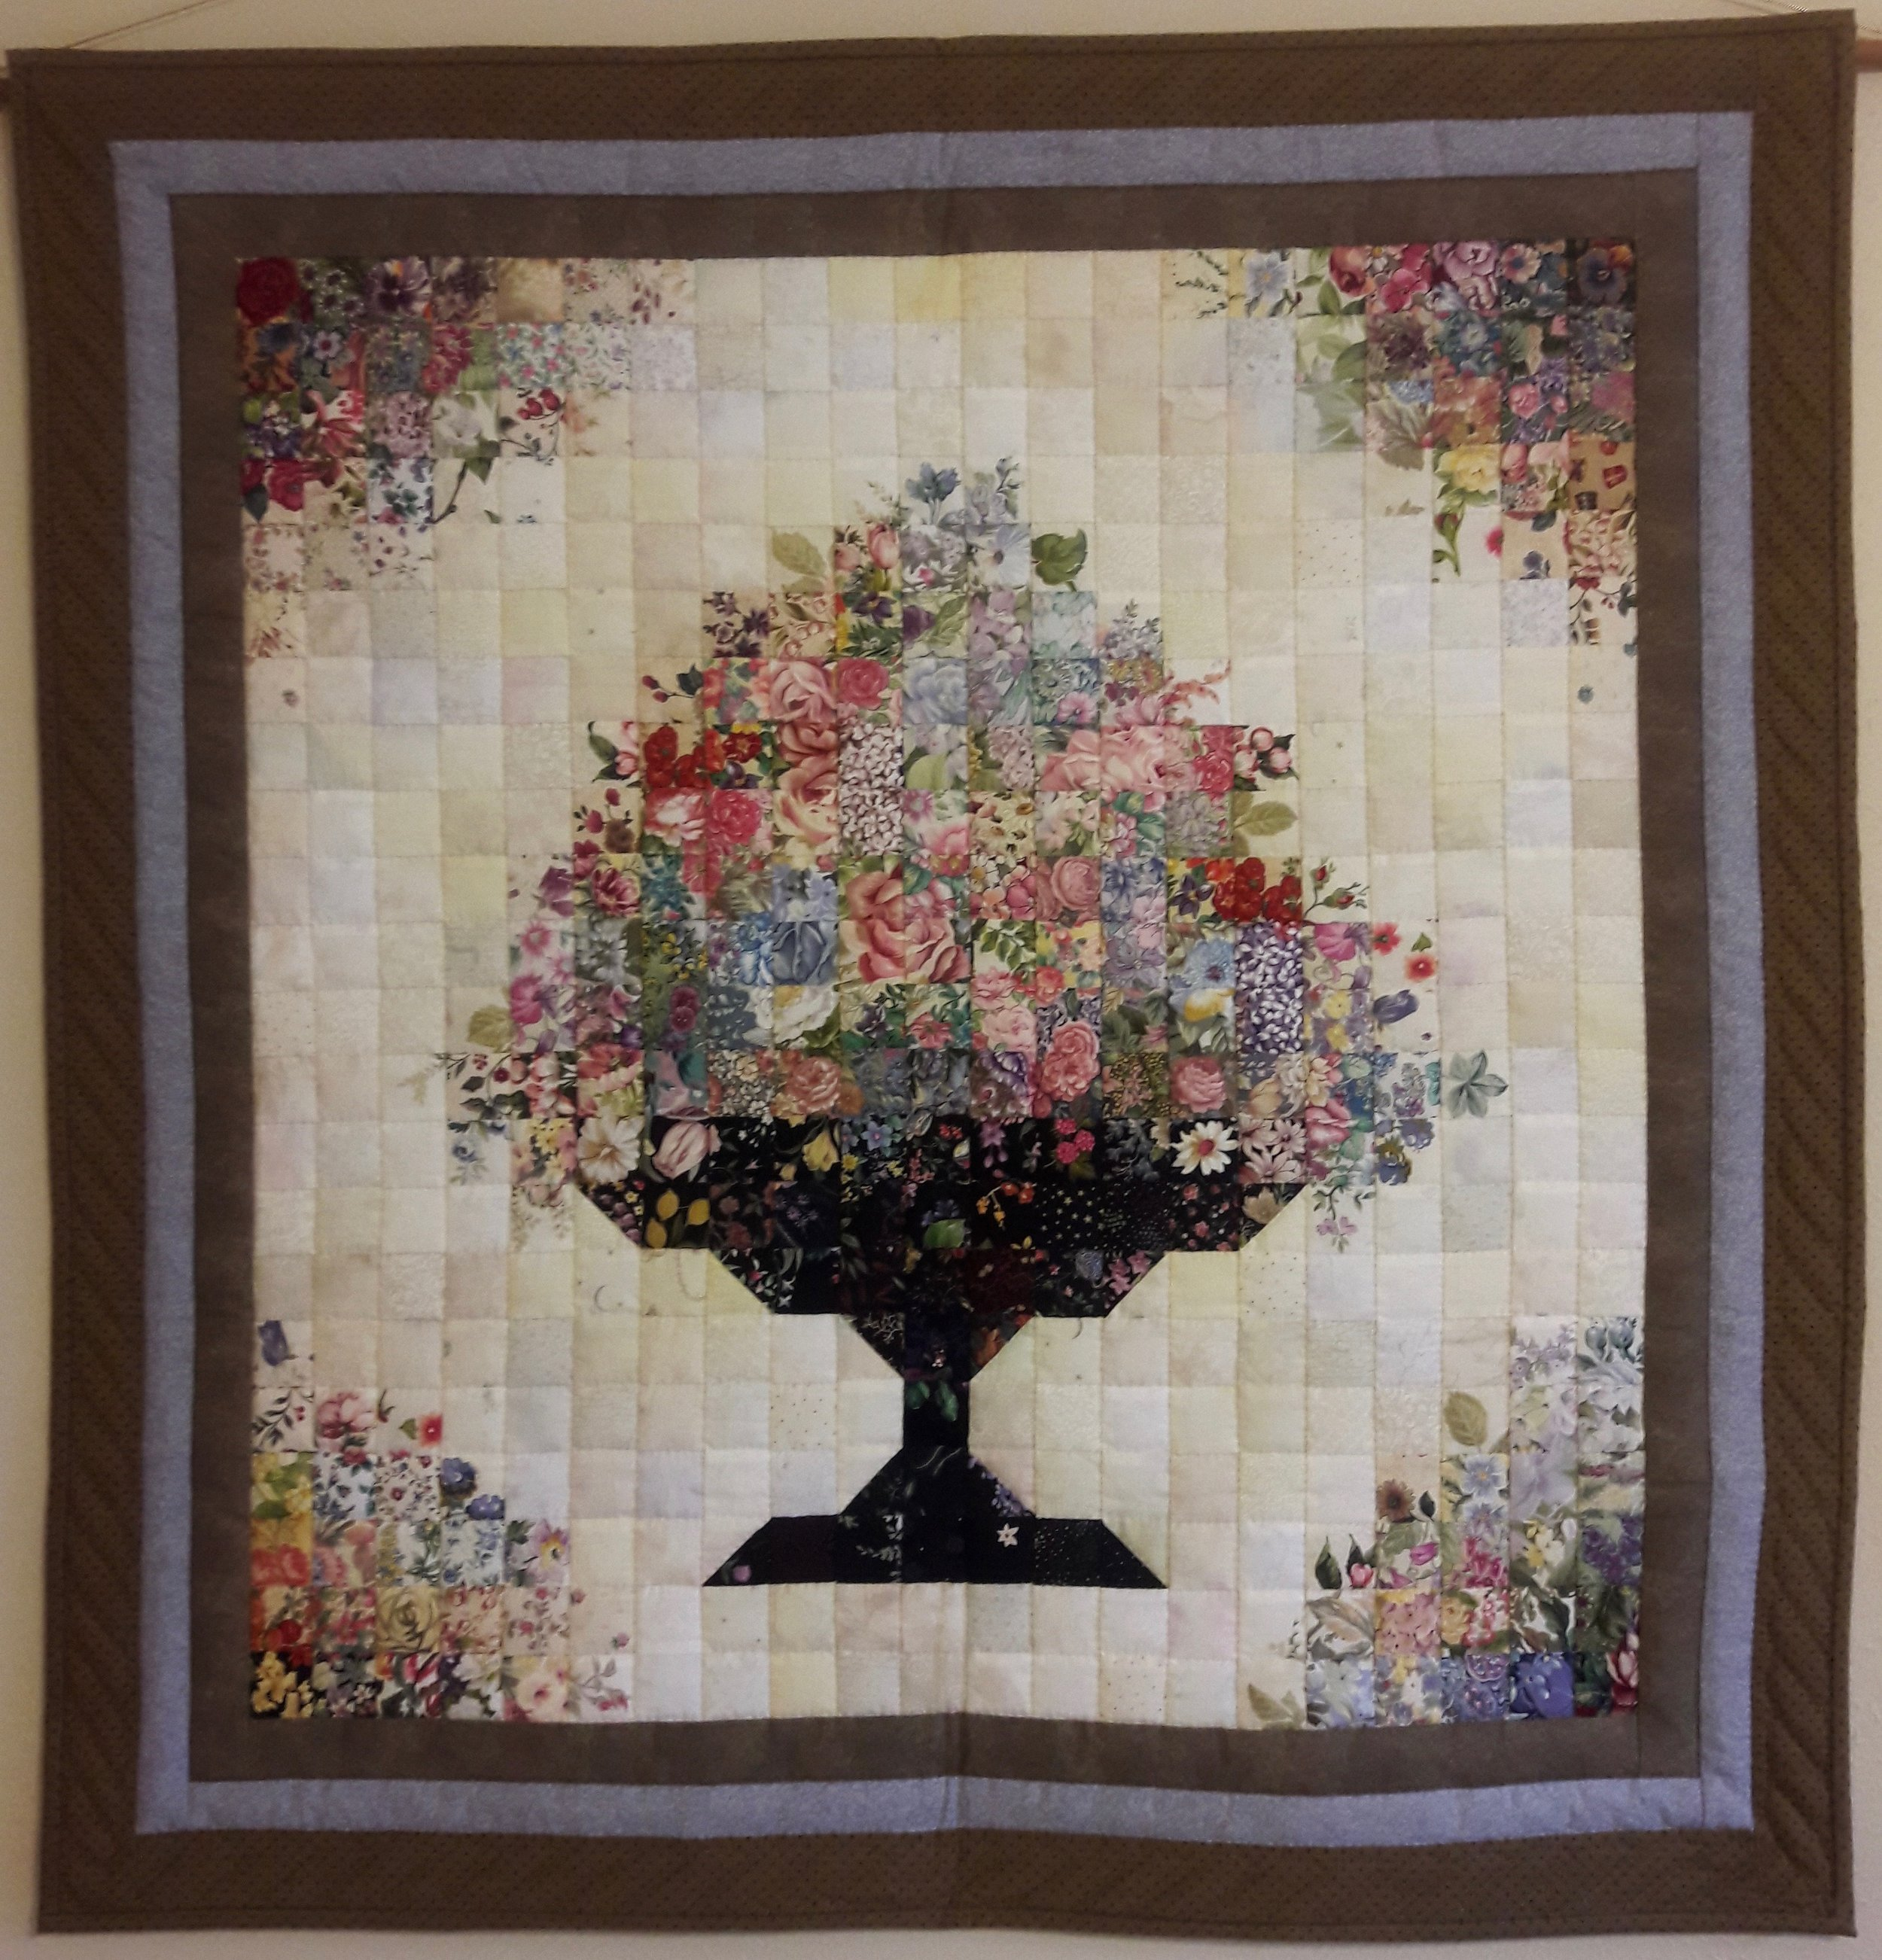 """Well Urned, Designed & Pieced by Cindy Helmuth, Hand Quilted by Eunice Chupp, donated by Cindy Helmuth, 39 x 41"""""""